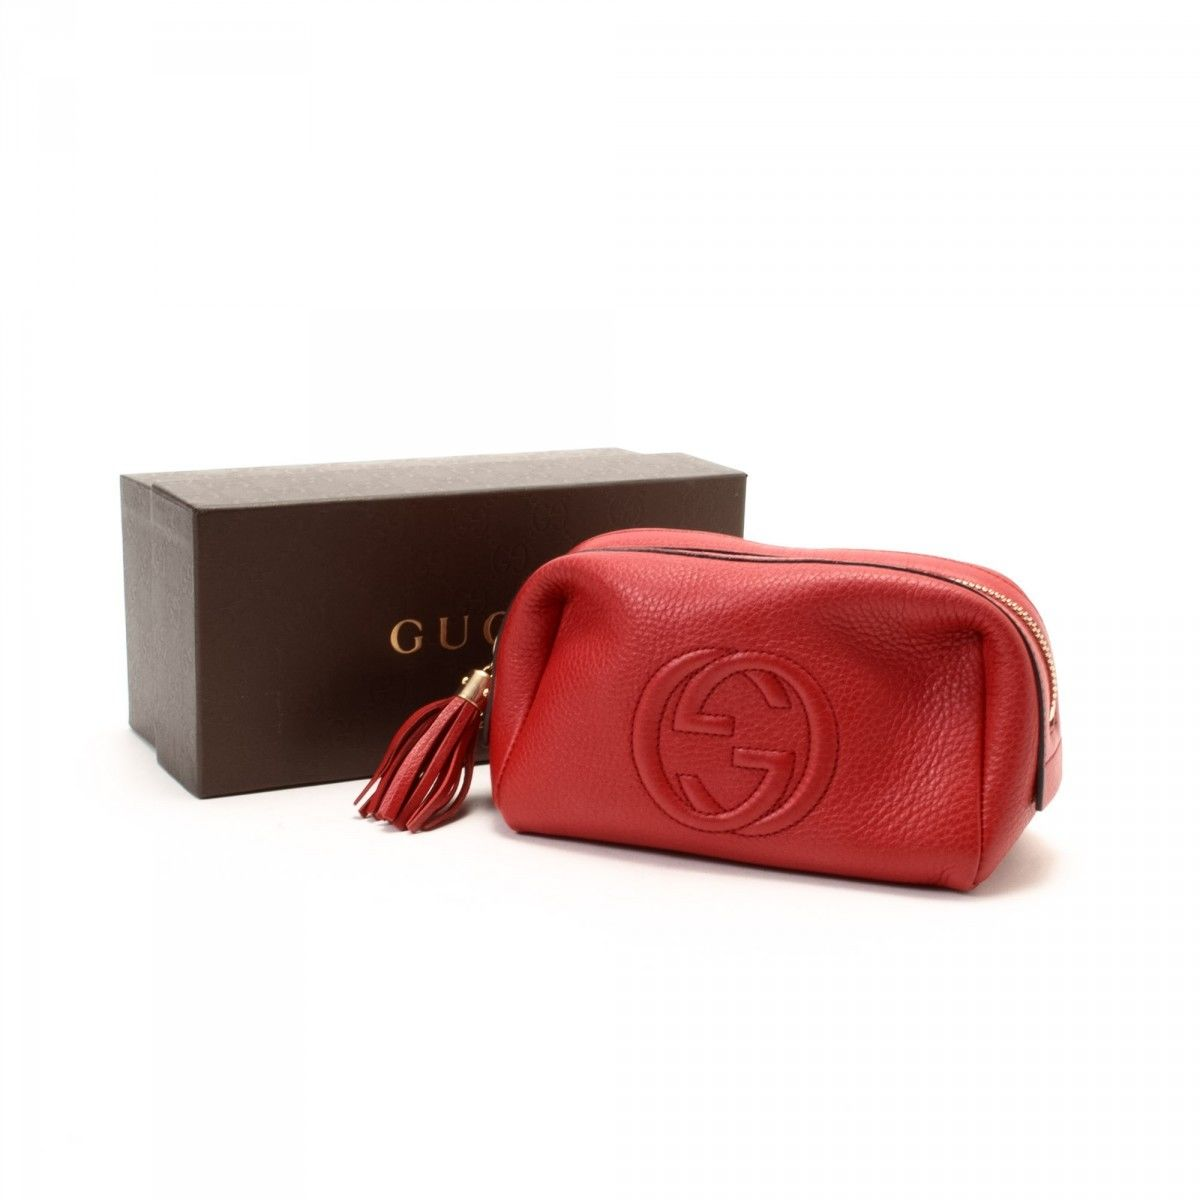 febea9b628d Gucci Soho Medium Cosmetic Pouch Leather - LXRandCo - Pre-Owned ...